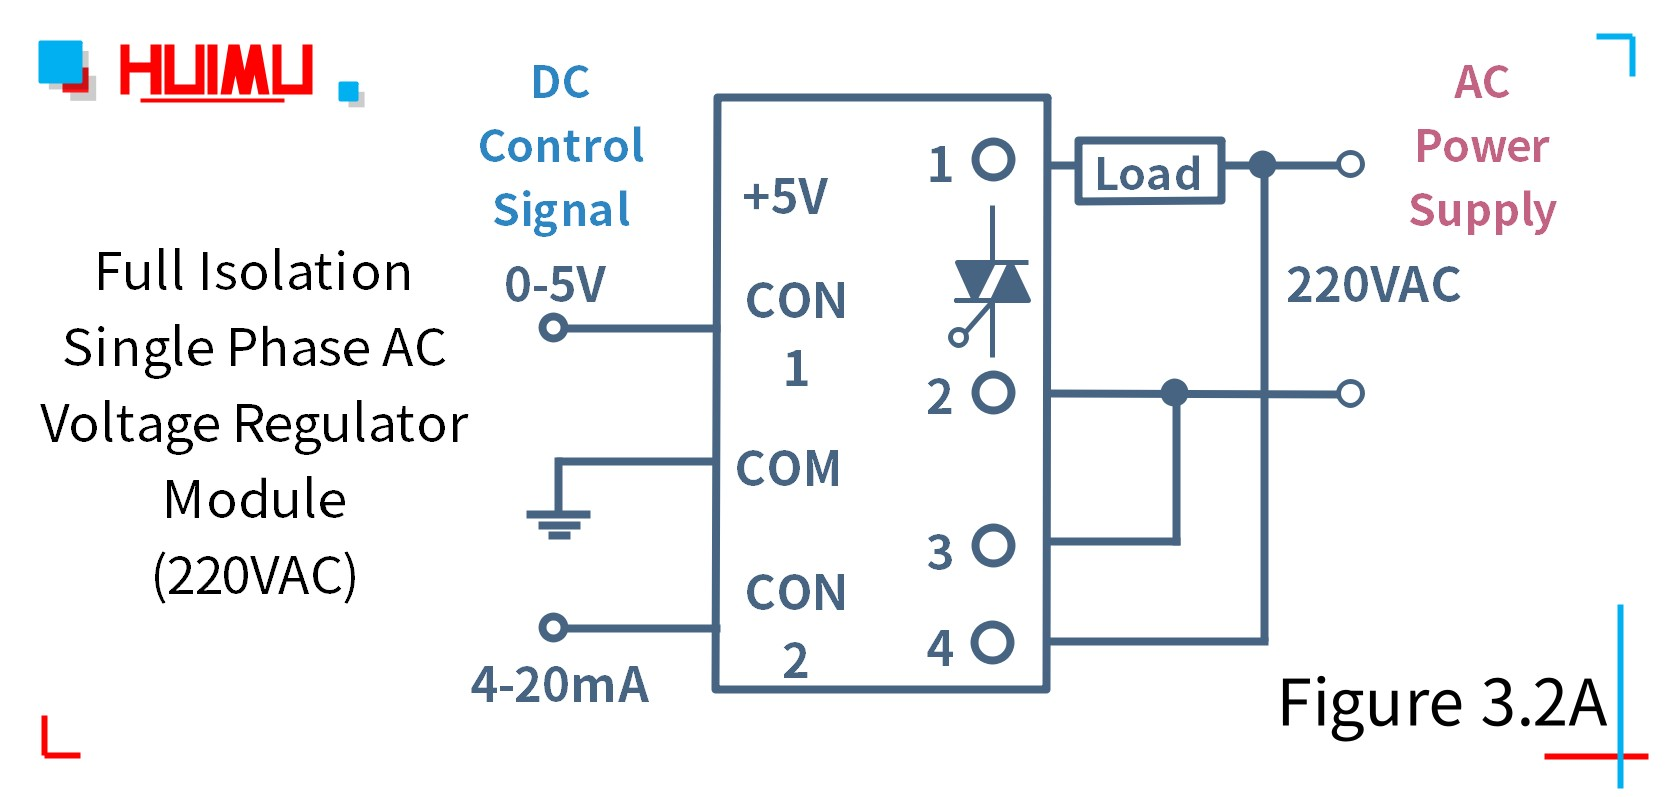 How to wire MGR mager MGR-DTY2240EG full isolation single phase AC voltage regulator? 220VAC type AC voltage regulator module circuit diagram, rated working voltage is 220VAC. More detail via www.@huimultd.com